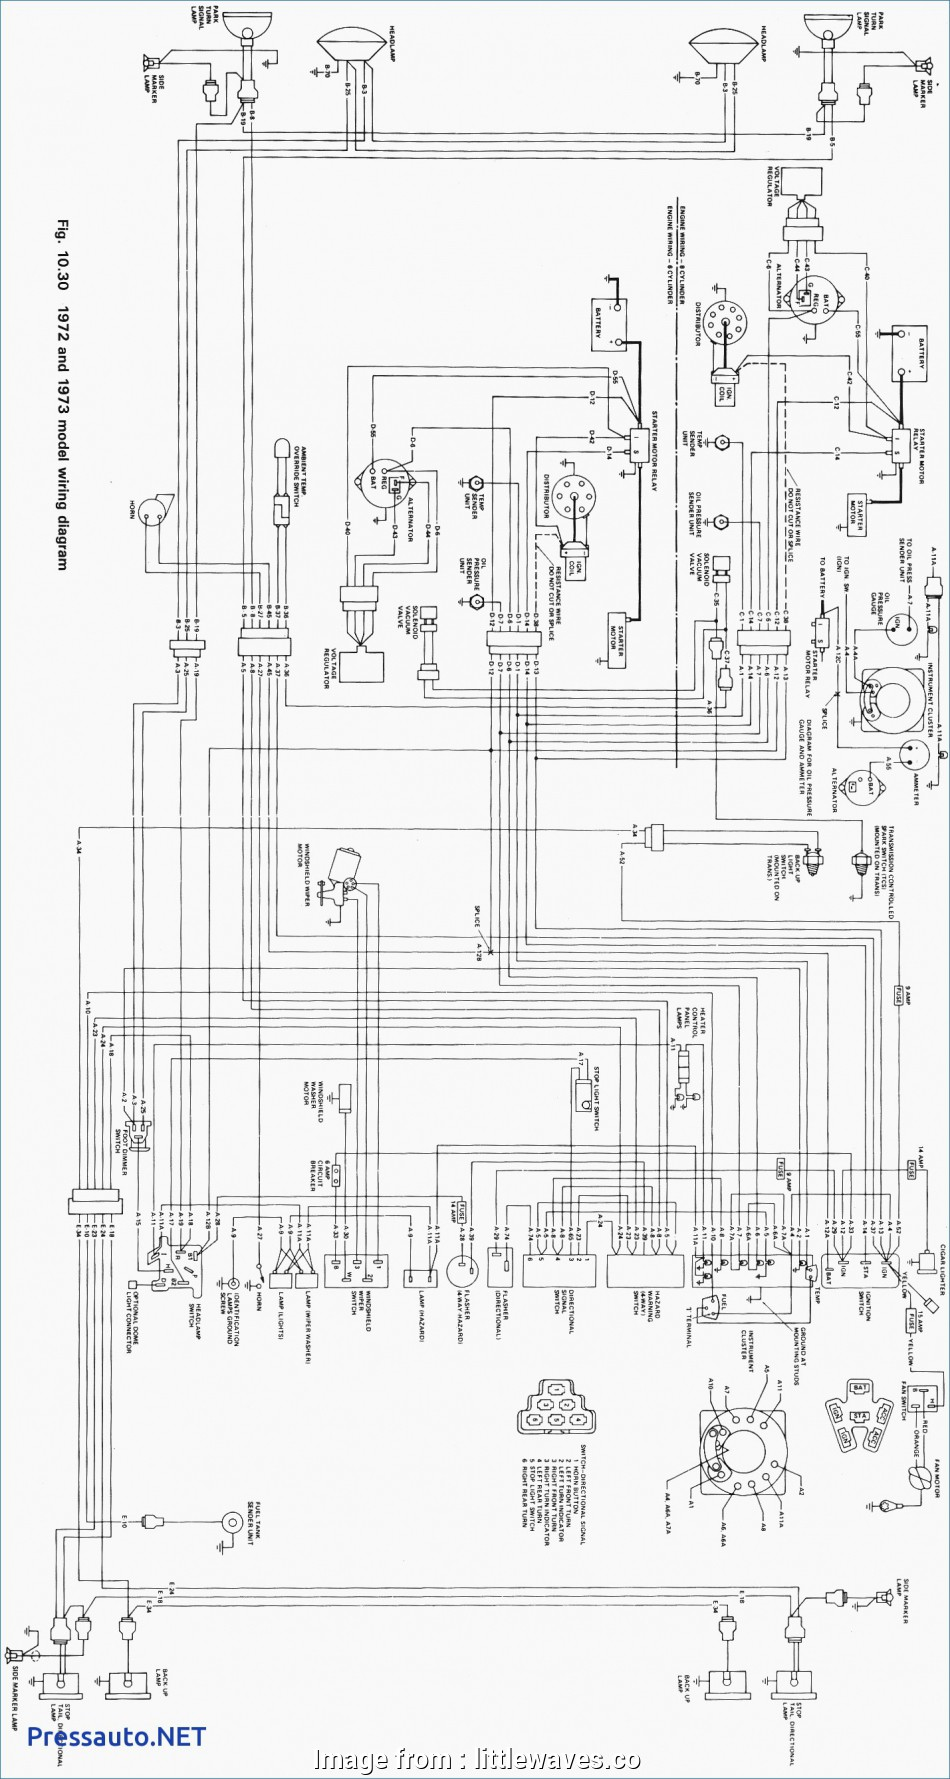 Light Switch Wiring, C New 79, Wiring Diagram Data Wiring